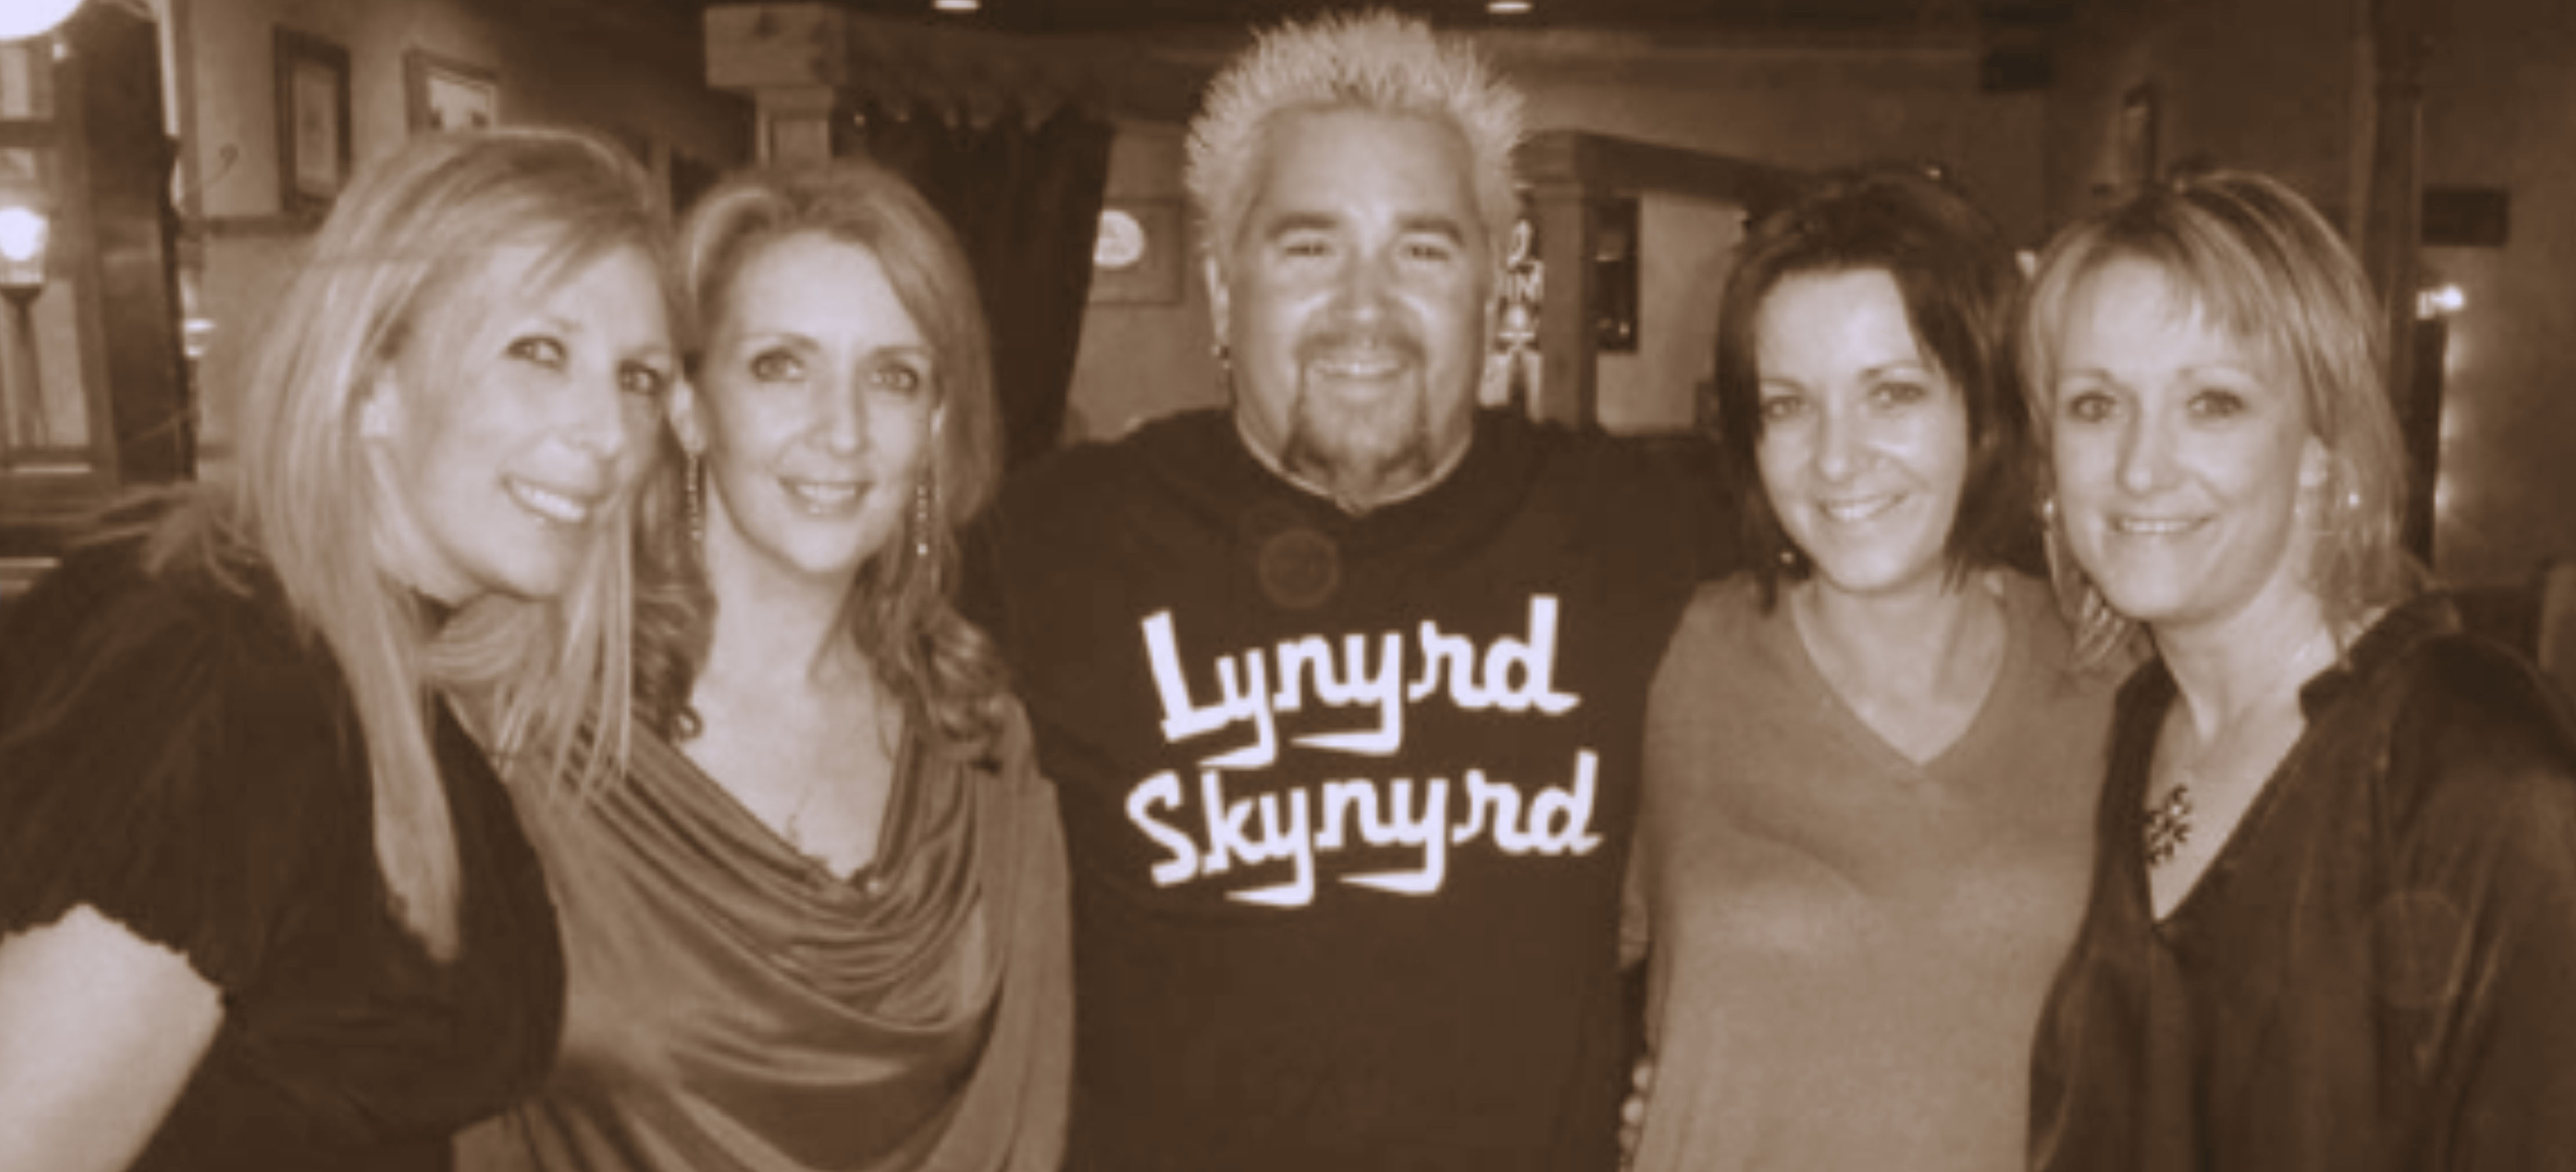 Owners with Guy Fieri